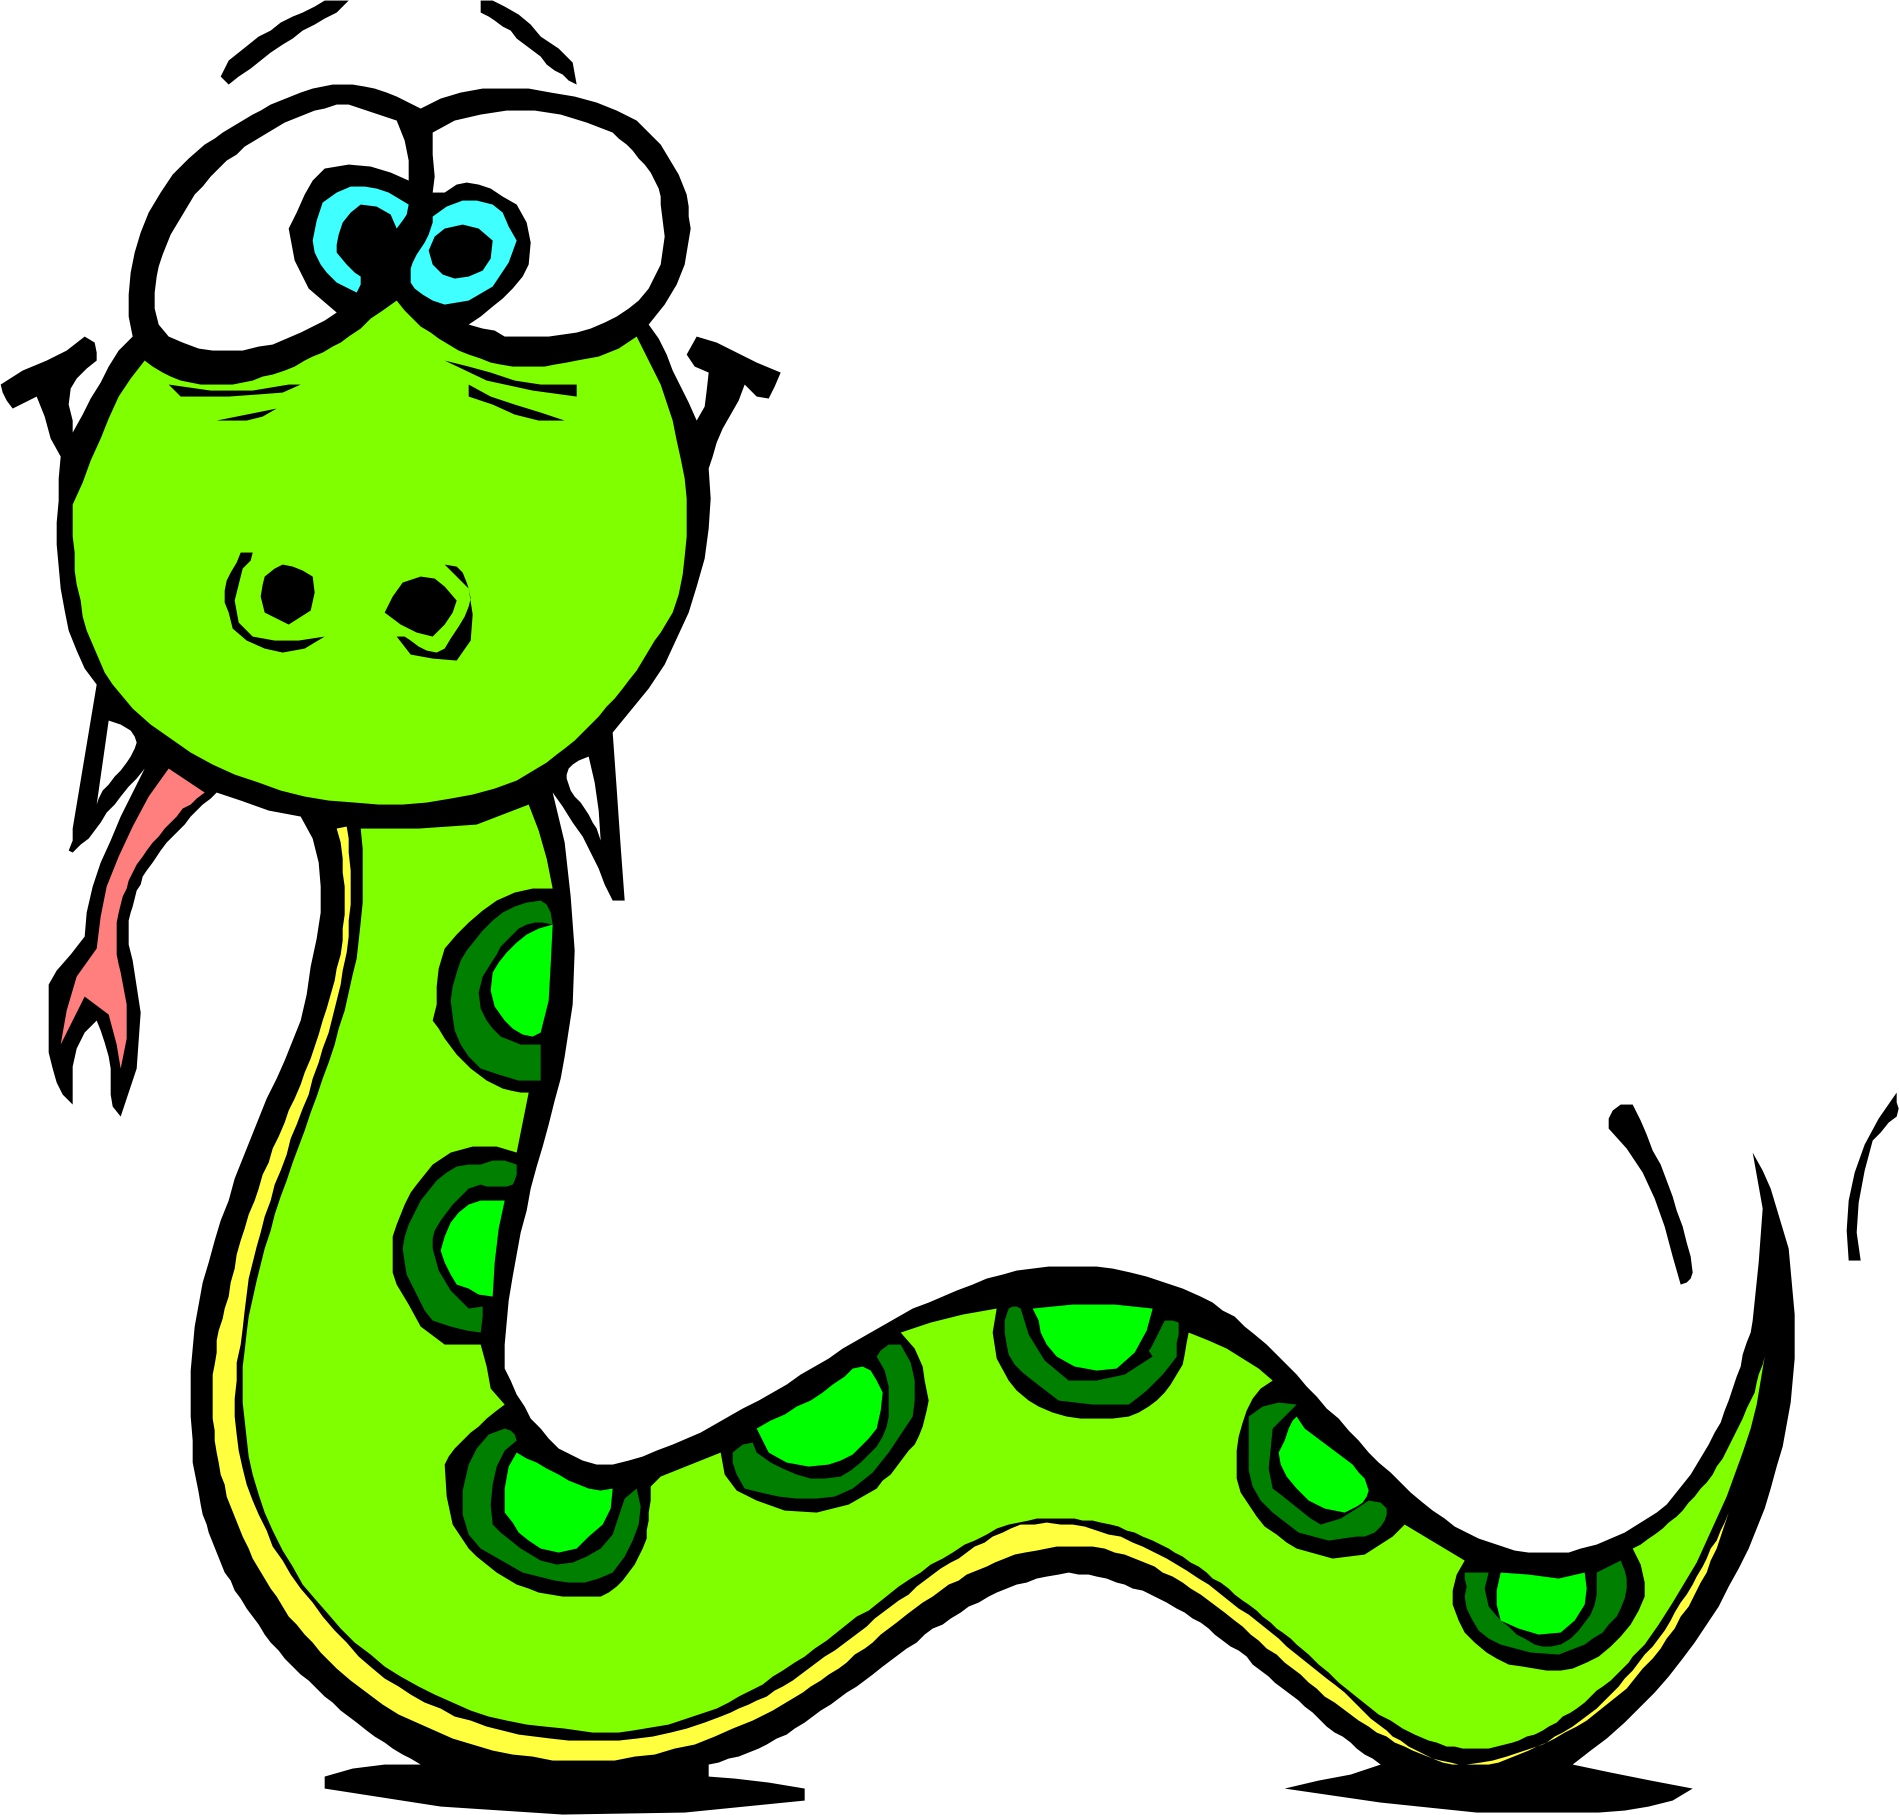 Snake cartoon clipart svg royalty free stock Free Cartoon Snakes Pictures, Download Free Clip Art, Free ... svg royalty free stock